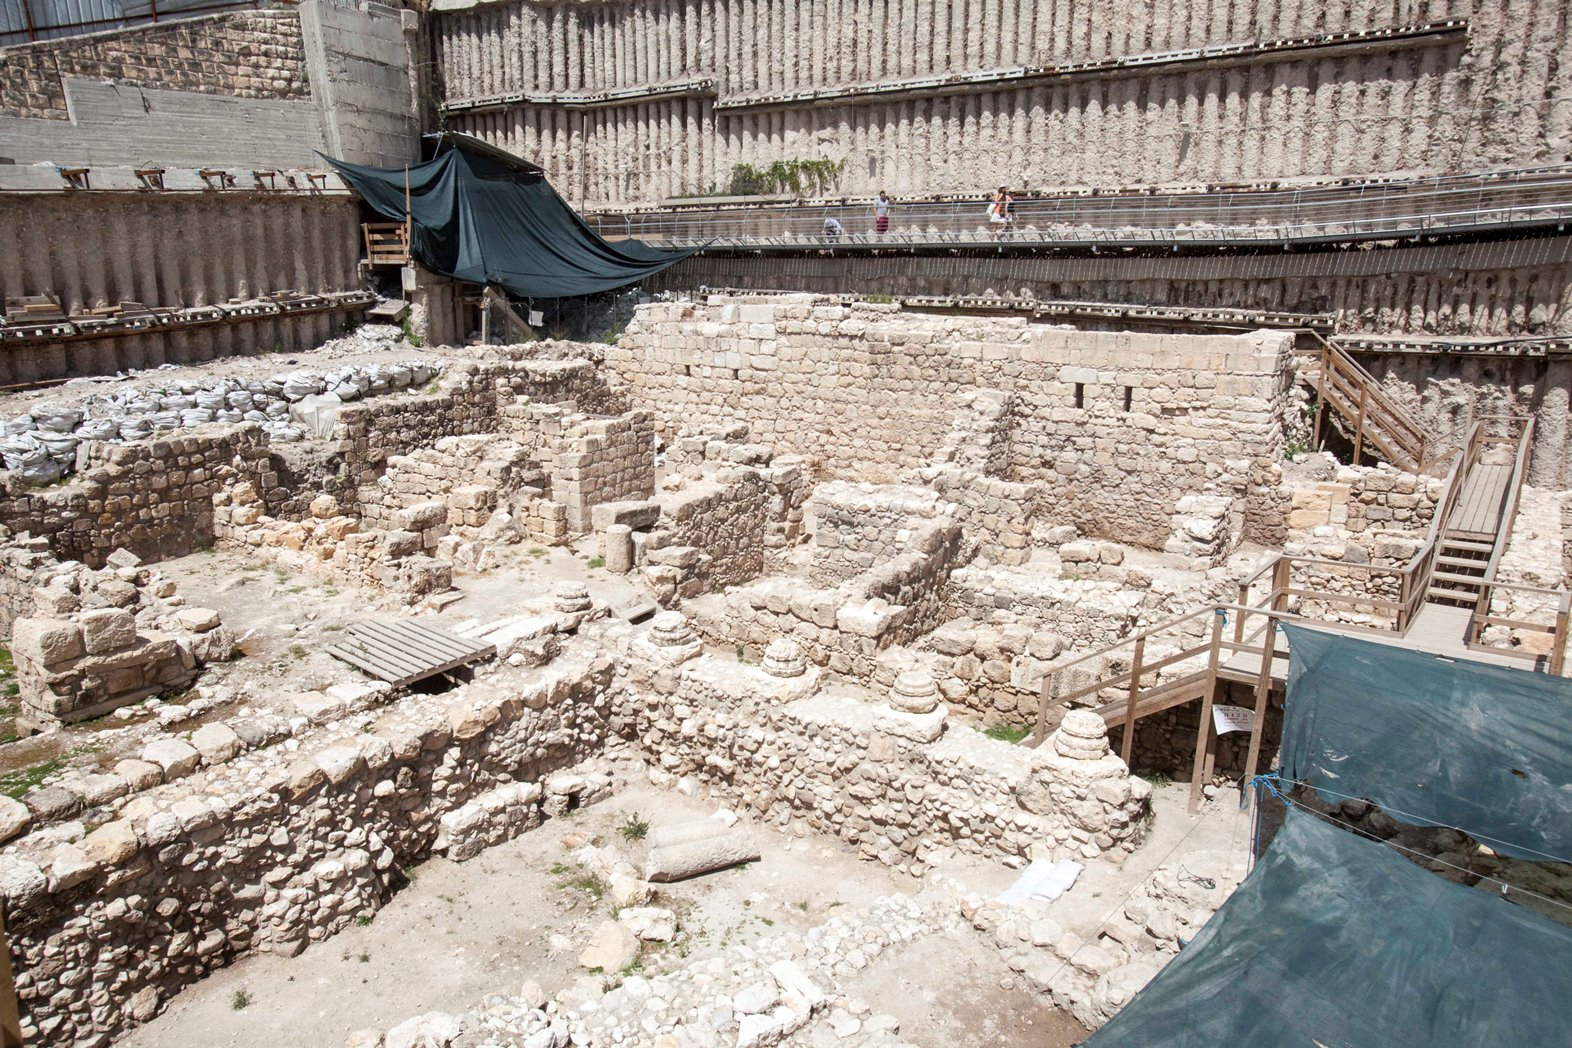 View of an archeological excavation in the City of David. Photo by Uri Lenz/FLASH90